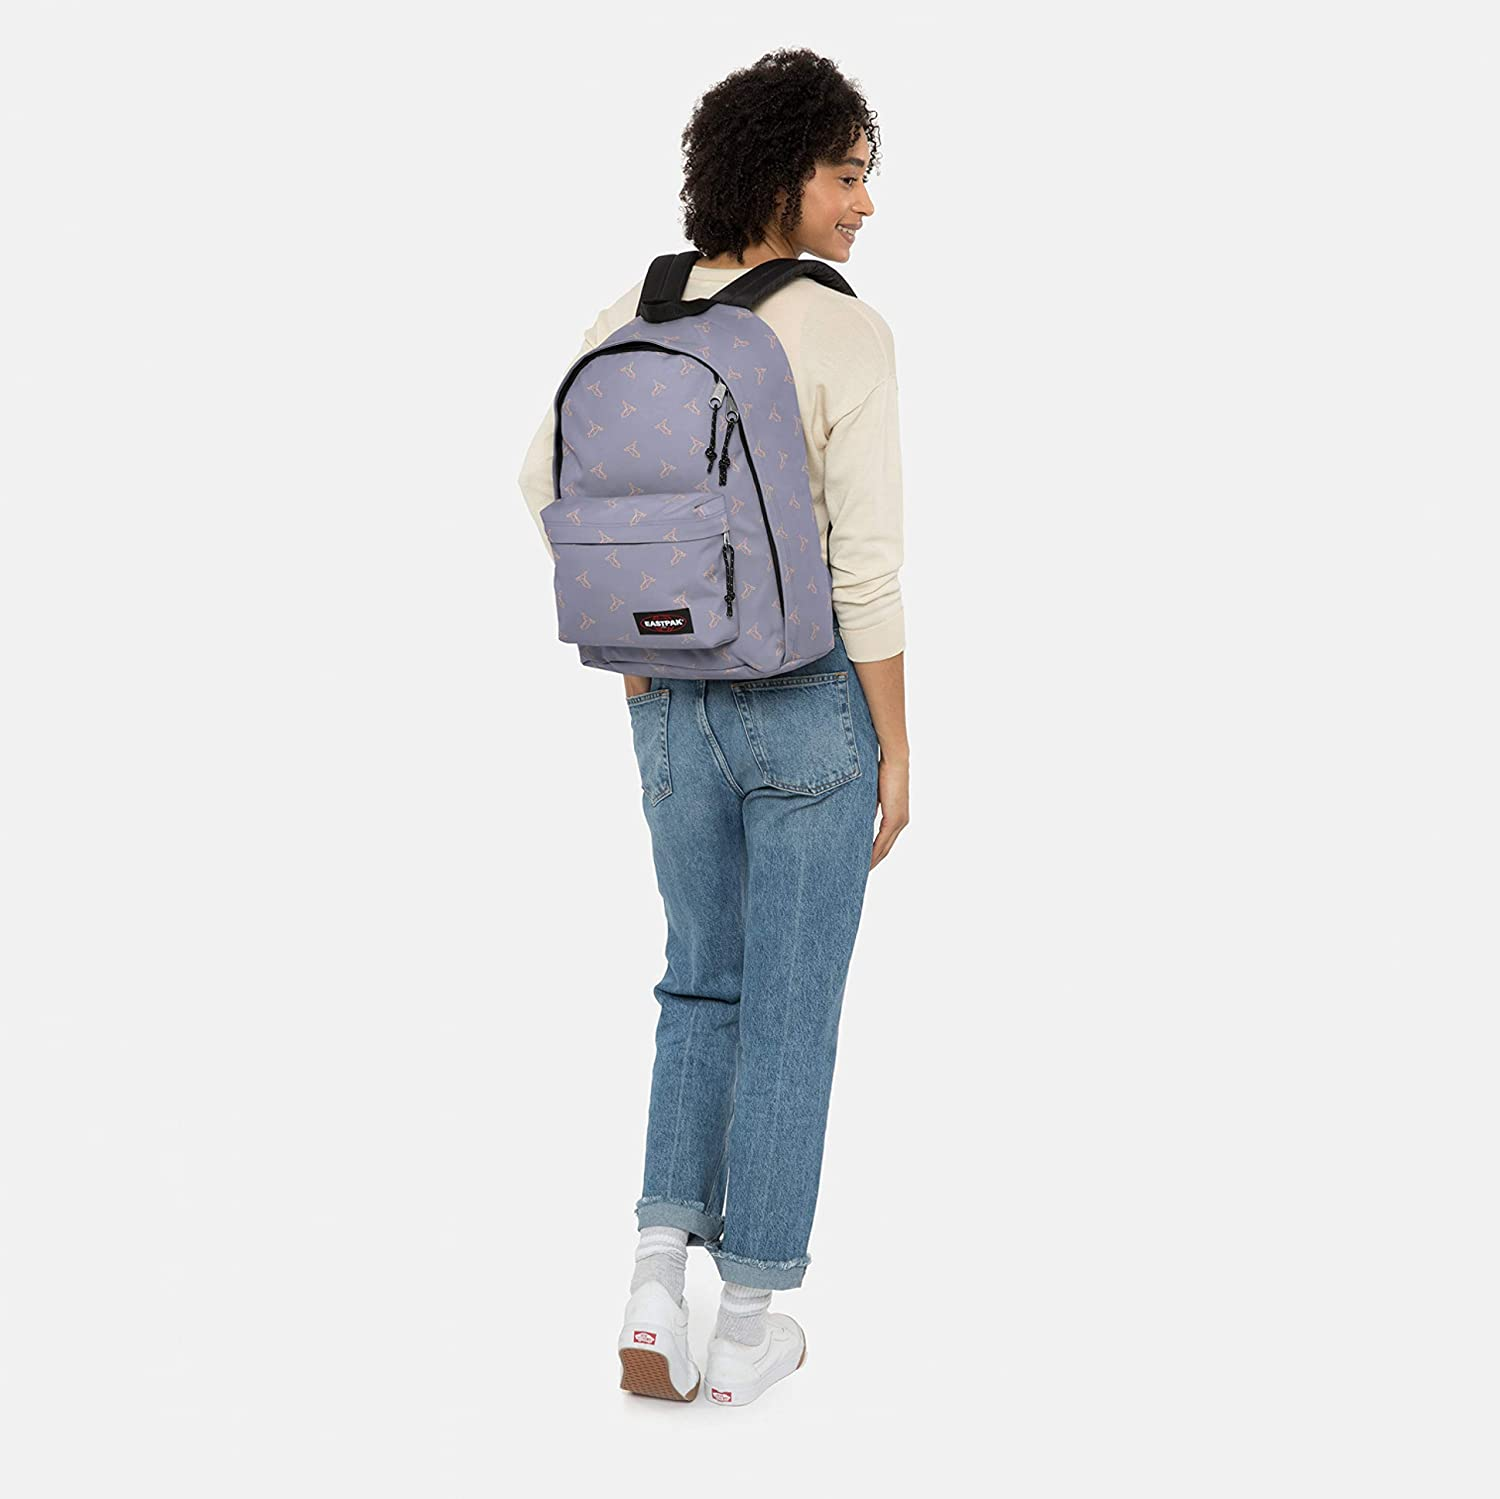 27 Liters Azul 44 cm Minigami Planes Eastpak out of Office Mochila Tipo Casual